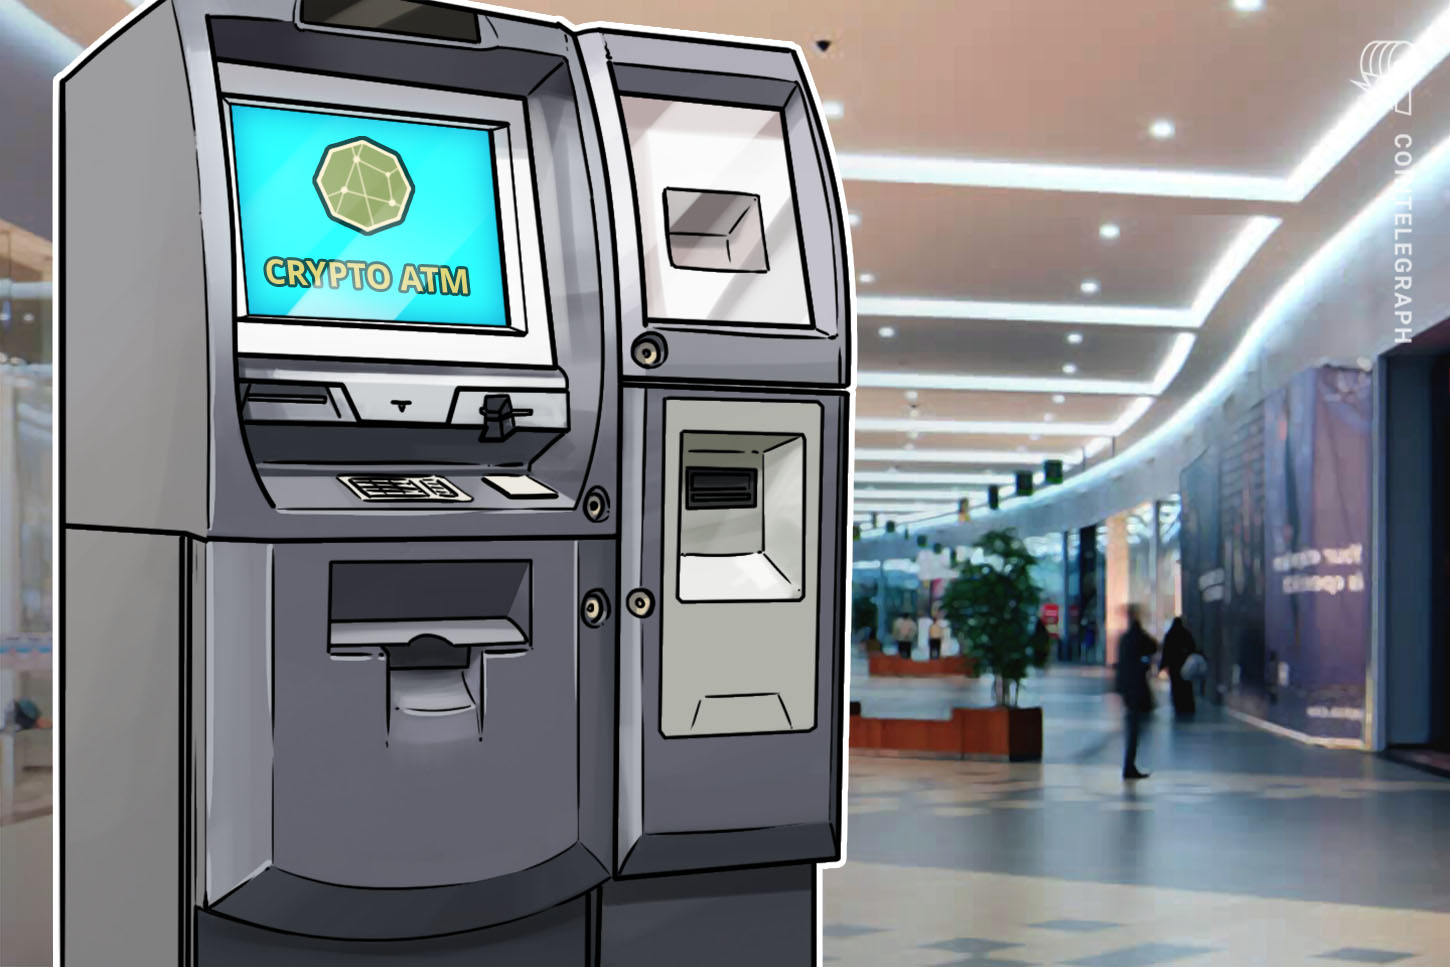 Global crypto ATM installations increased by 70% in 2021